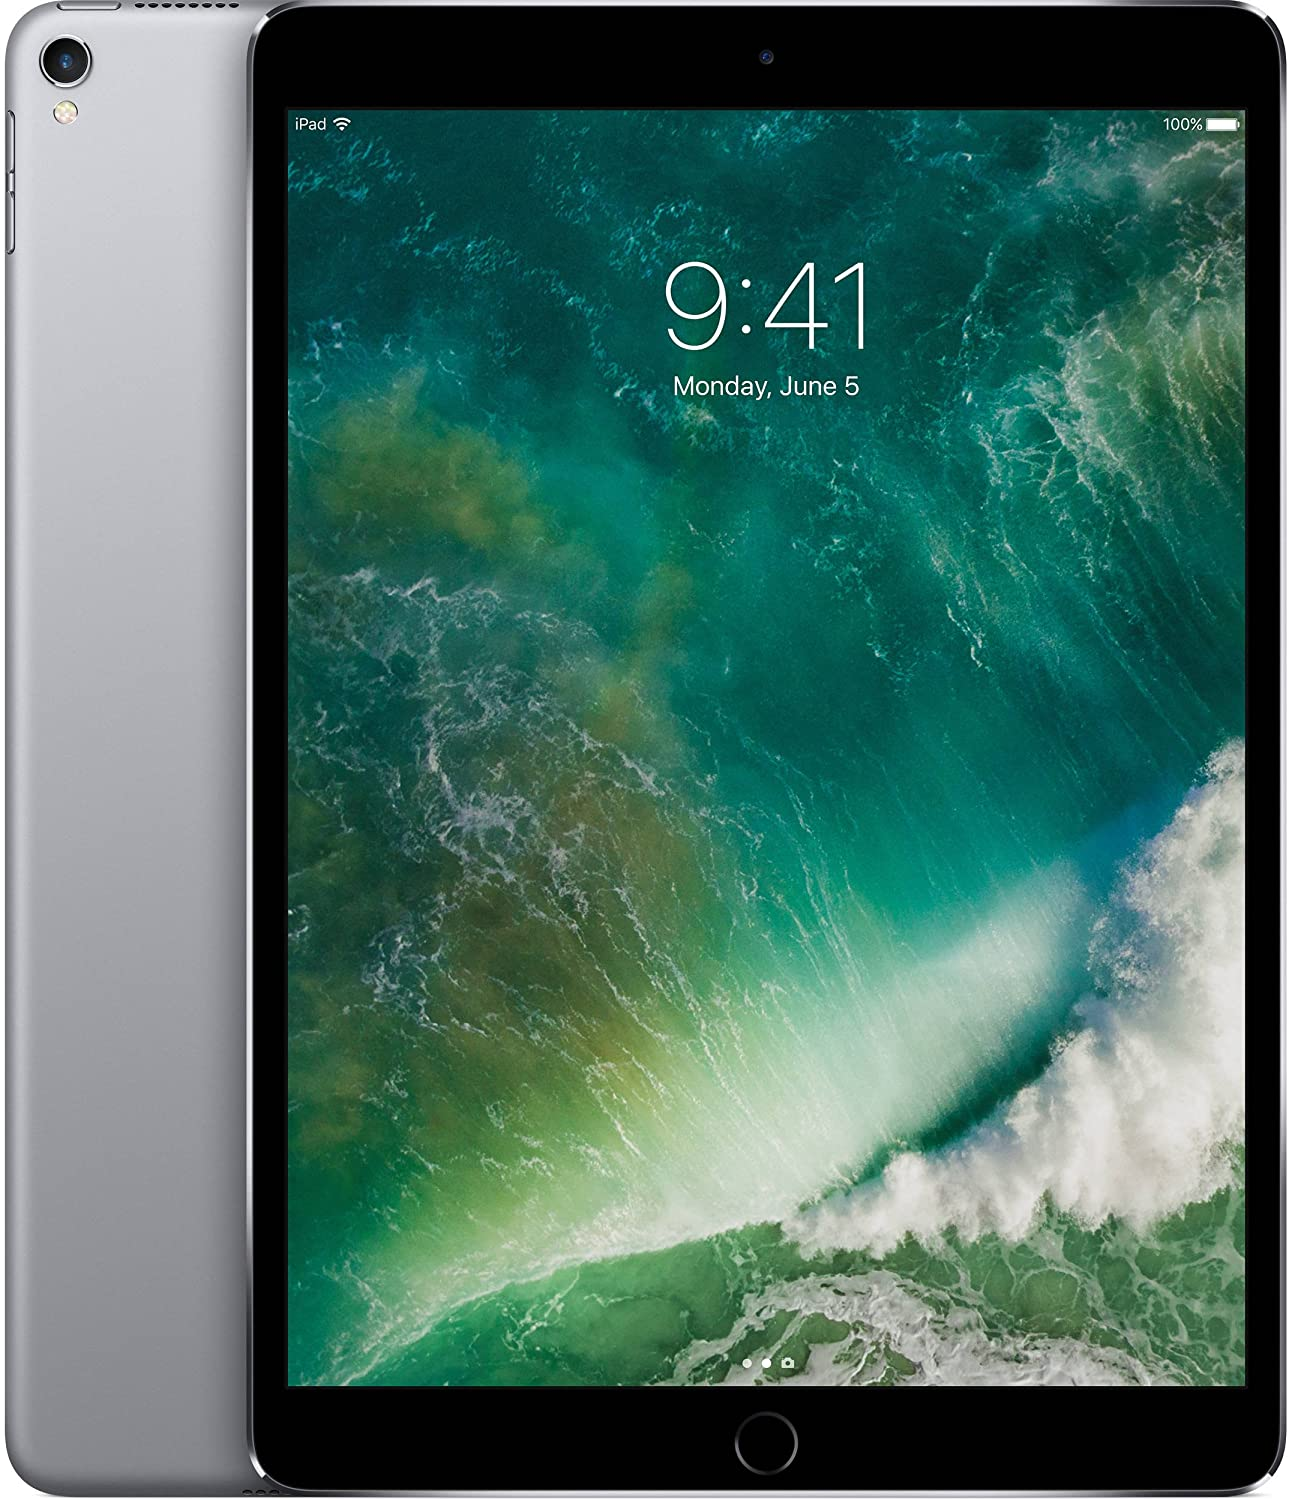 Apple iPad Pro 10.5 64GB Space Grey Cellular